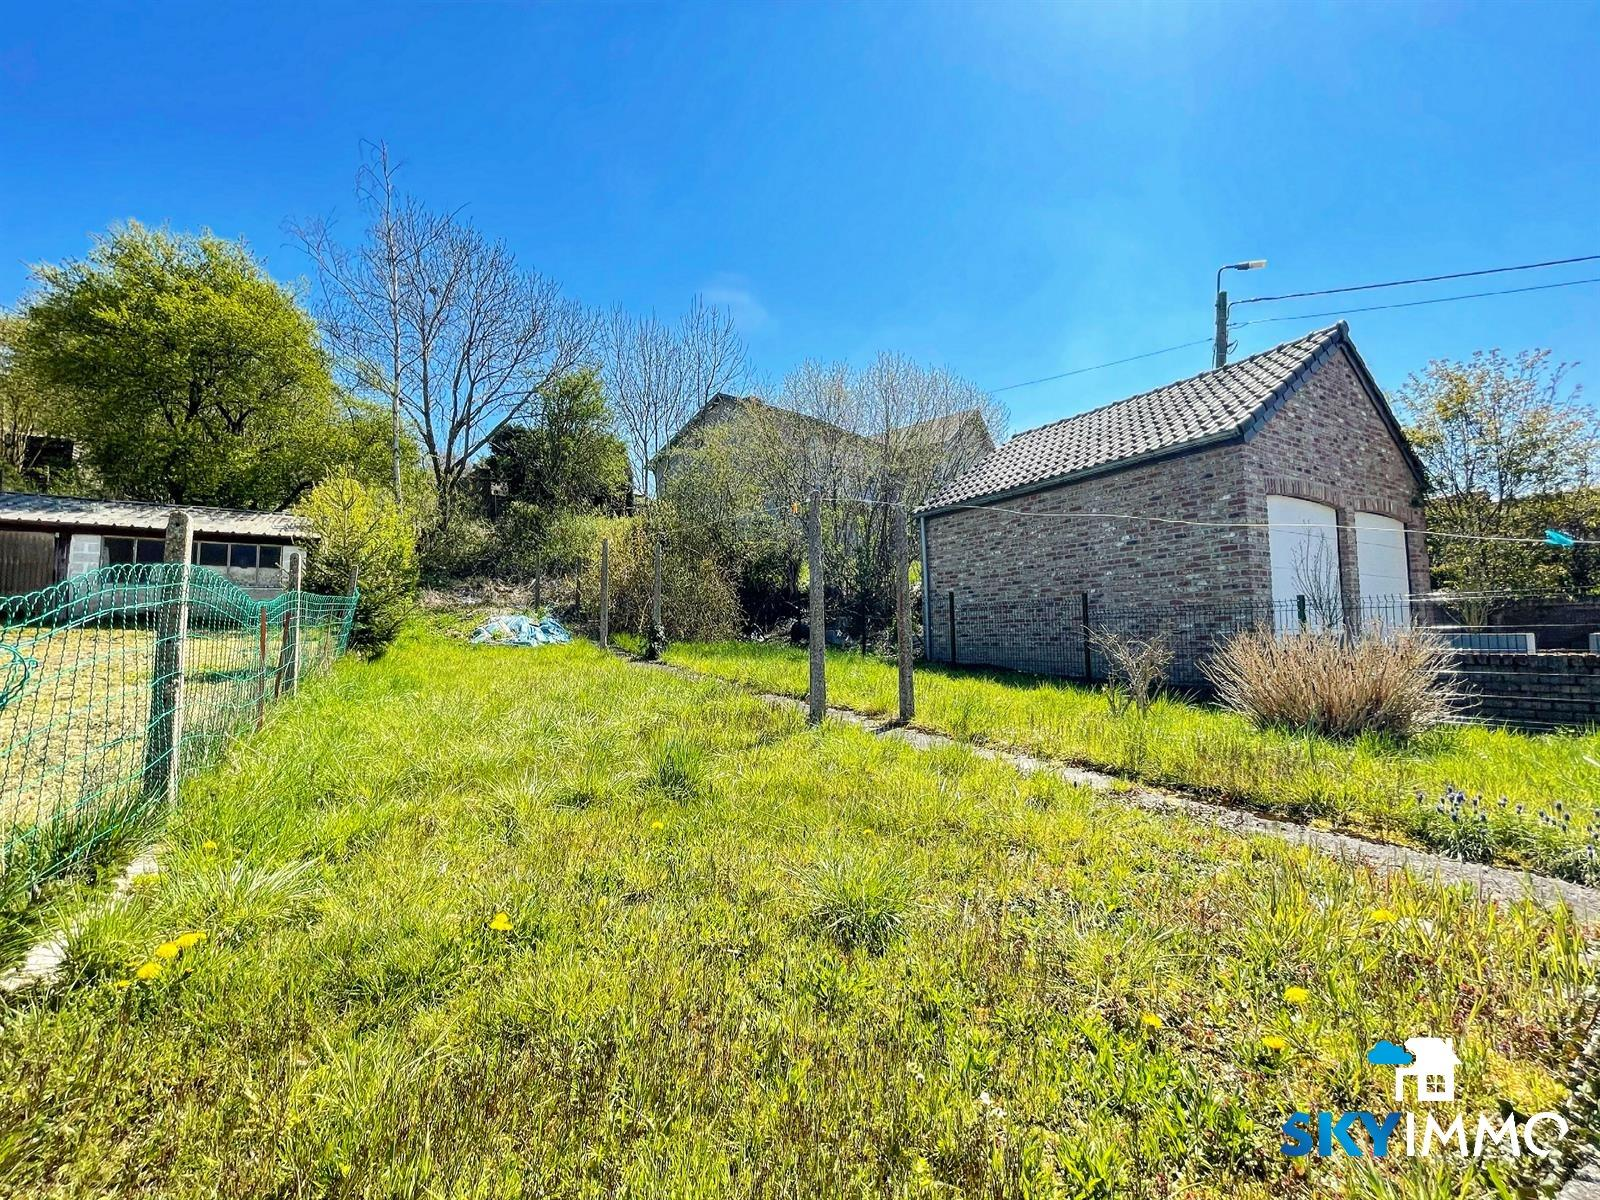 Huis - Flemalle - #4346611-13